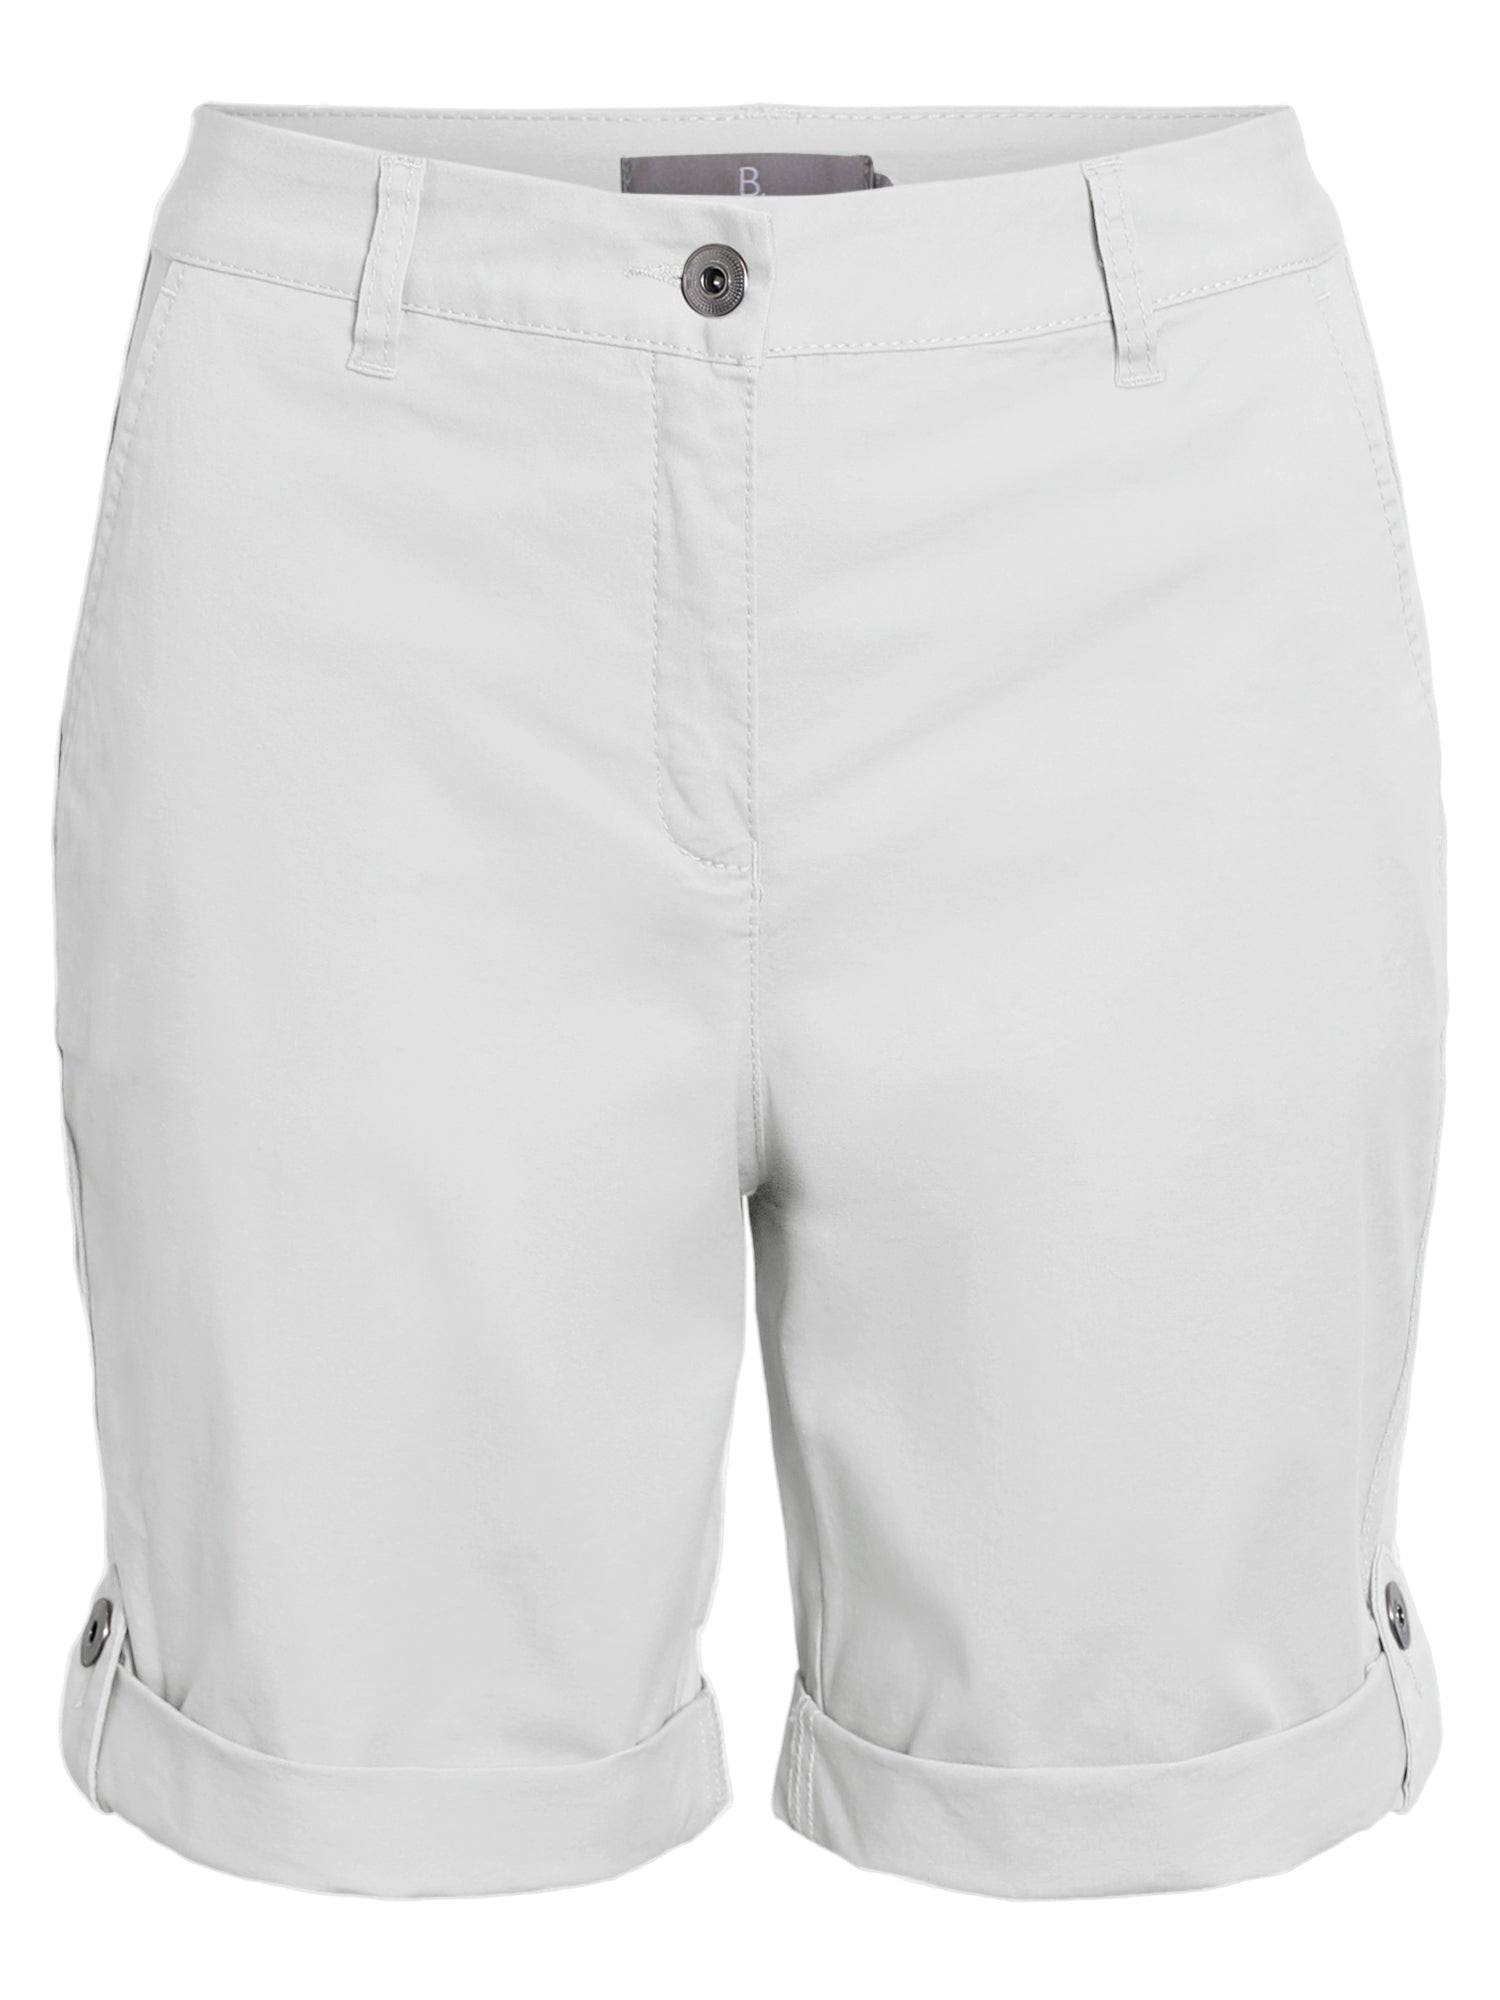 Image of   Casual shorts - White